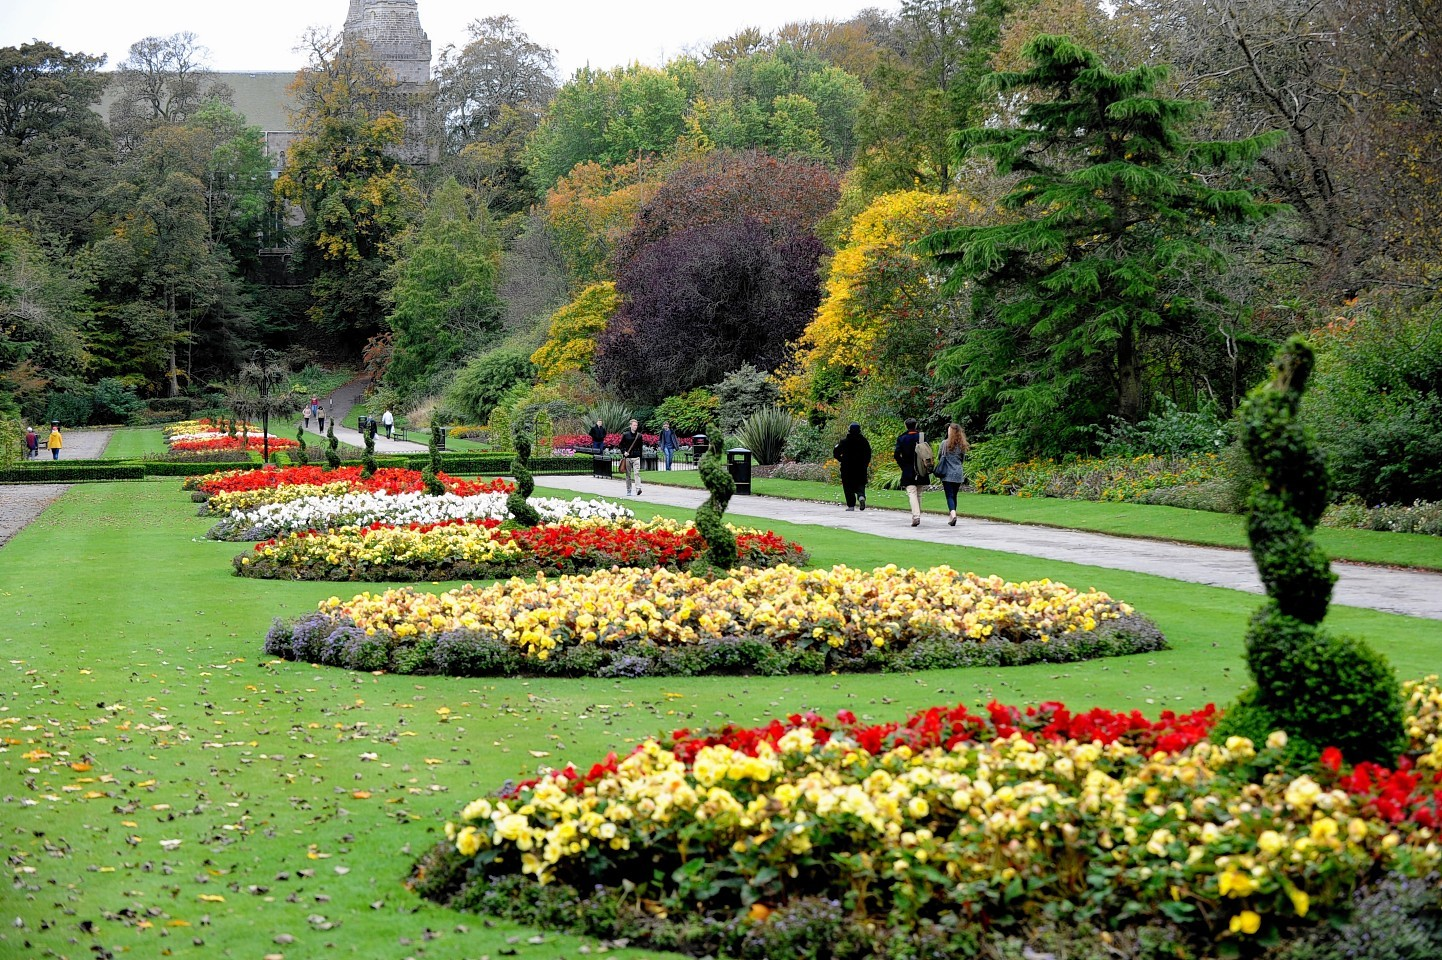 Aberdeen's parks and gardens bagged top prize at the Britain in Bloom in 2014